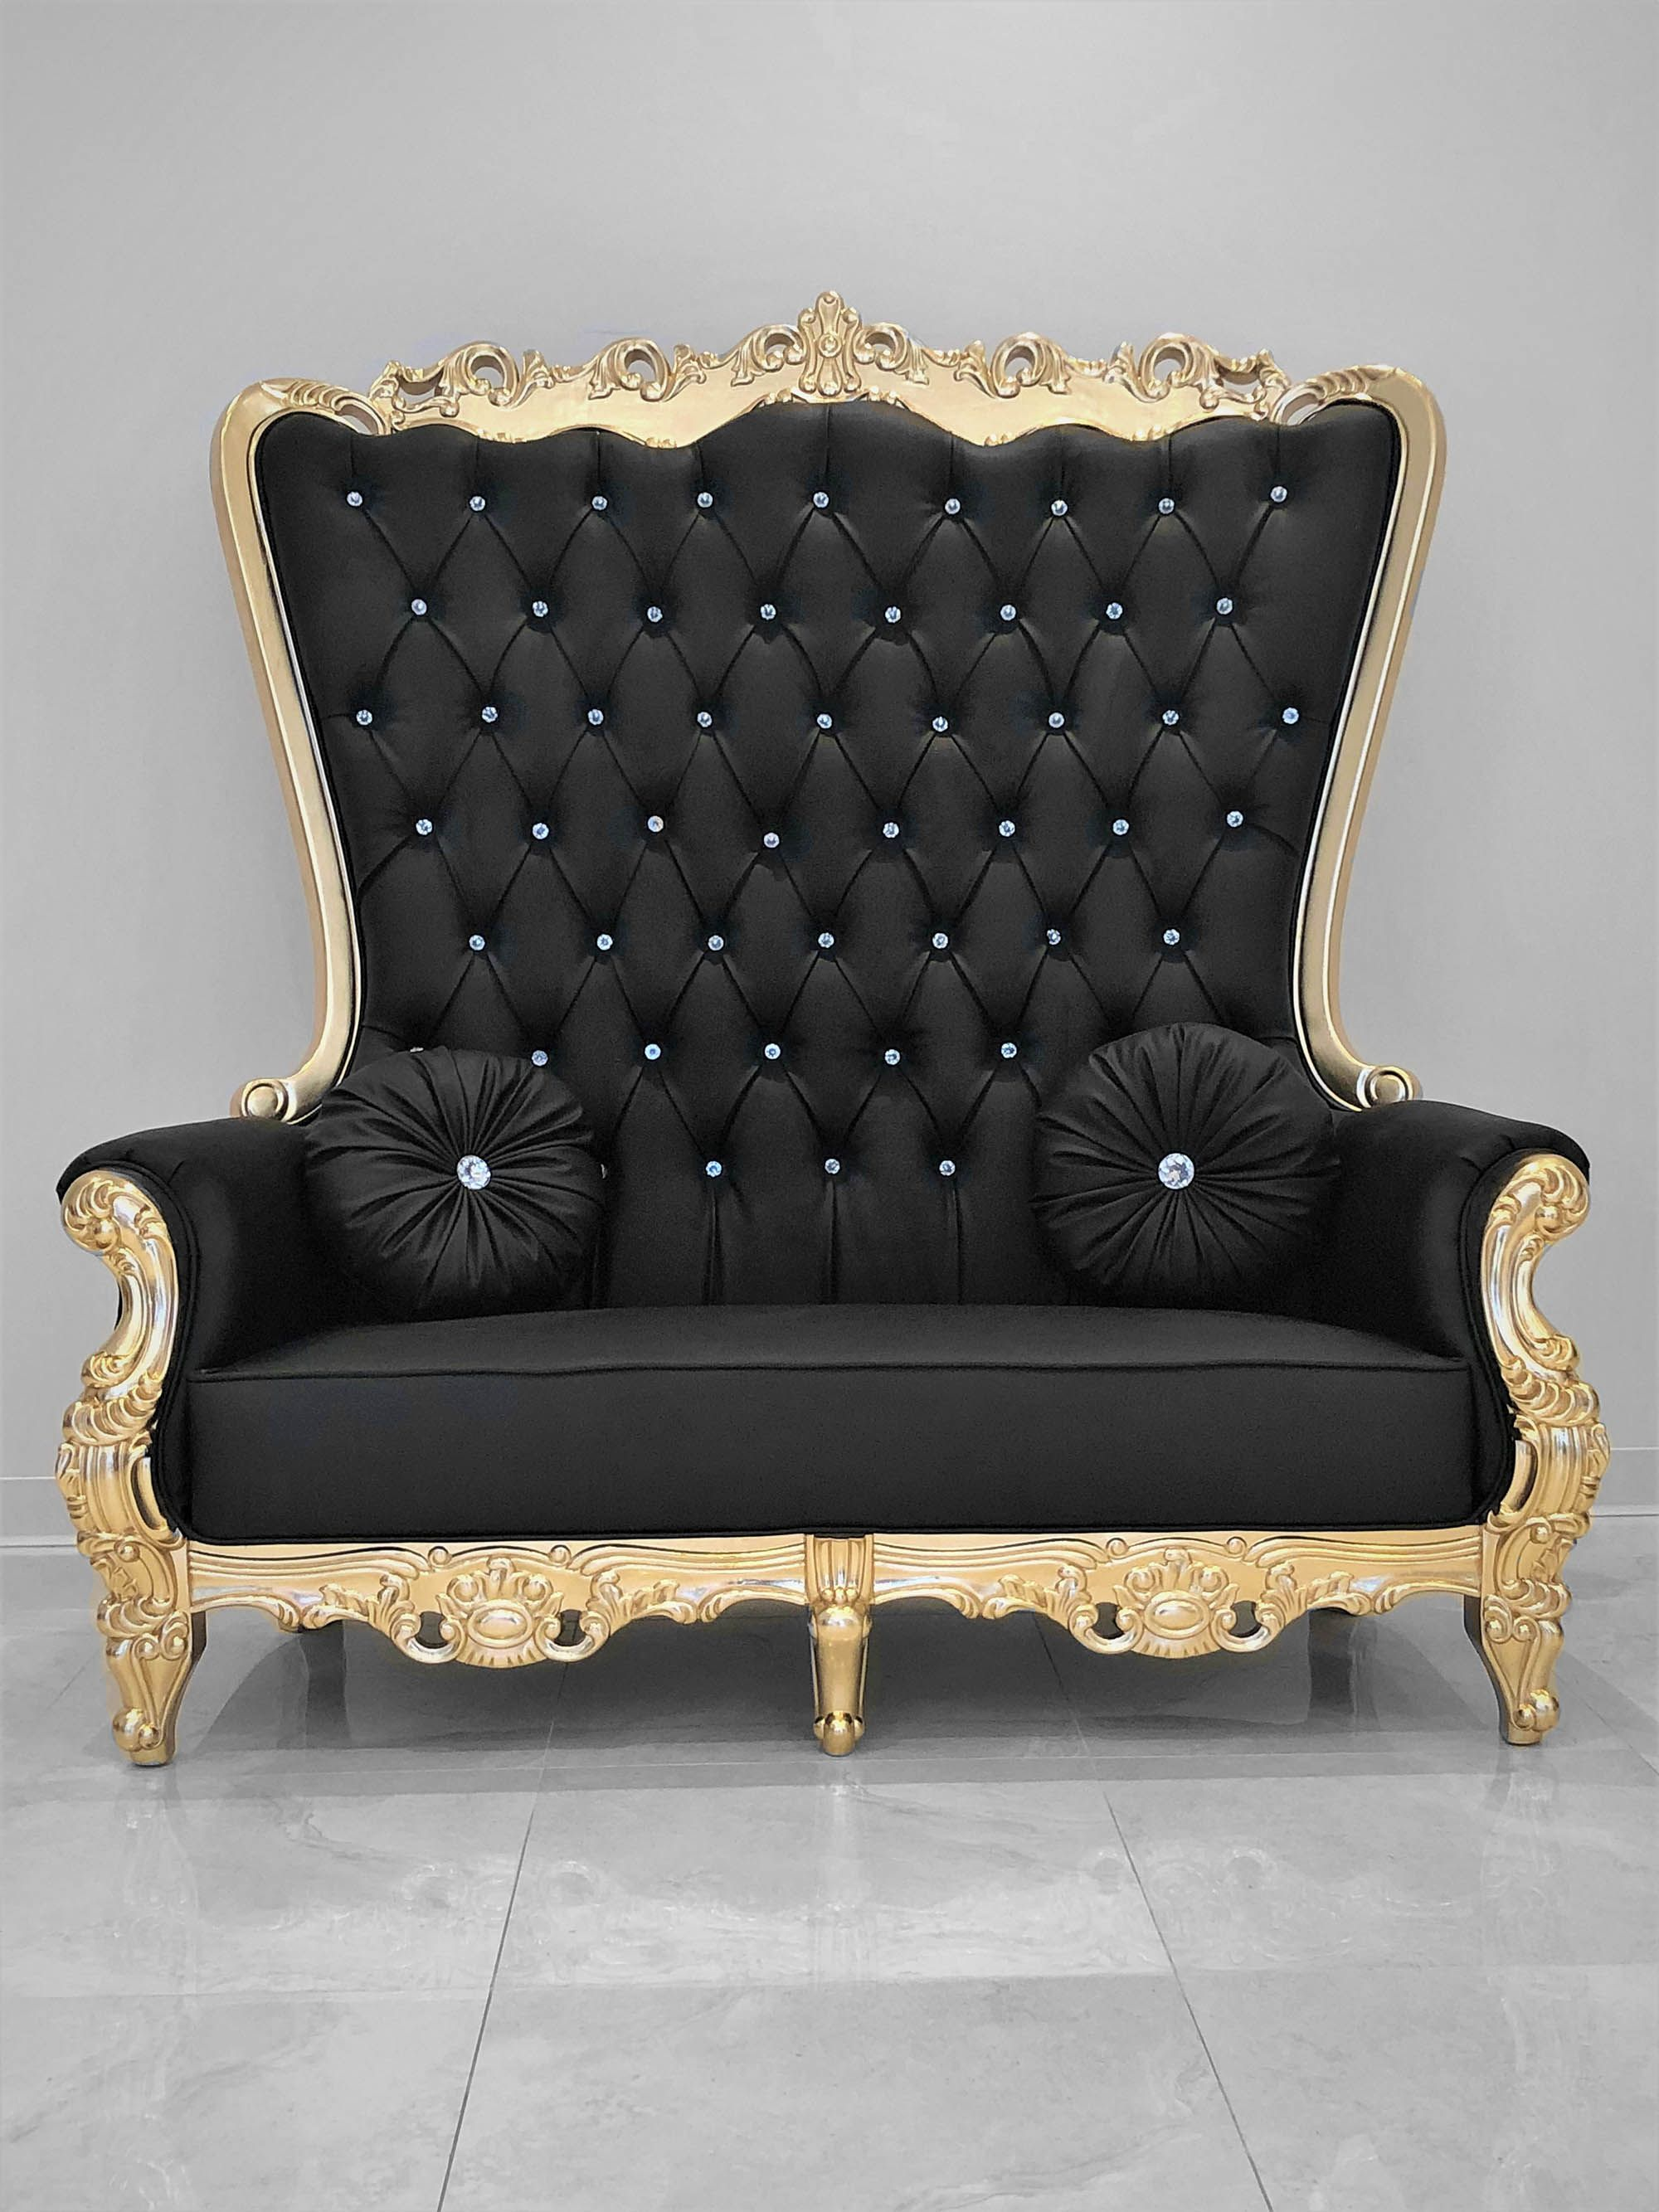 black leather high back dining chairs on double high back chair queen throne in black leather and gold frame upholstered kids chair upholstered bedroom chair vintage dining chairs chair queen throne in black leather